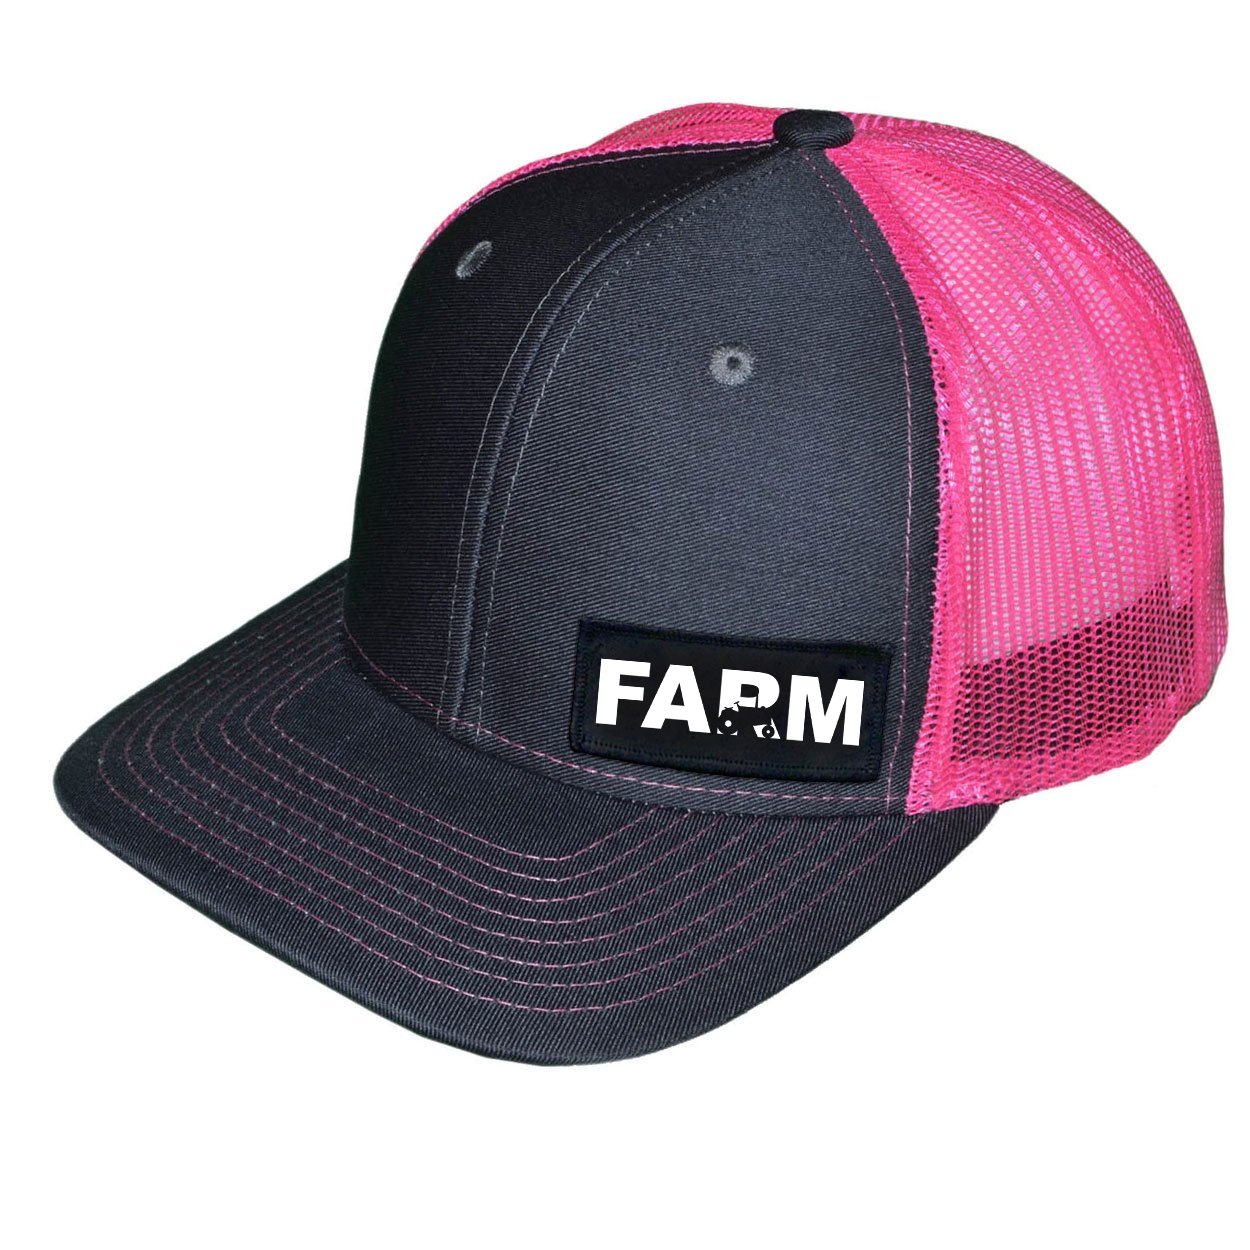 Farm Tractor Logo Night Out Woven Patch Snapback Trucker Hat Dark Gray/Neon Pink (White Logo)